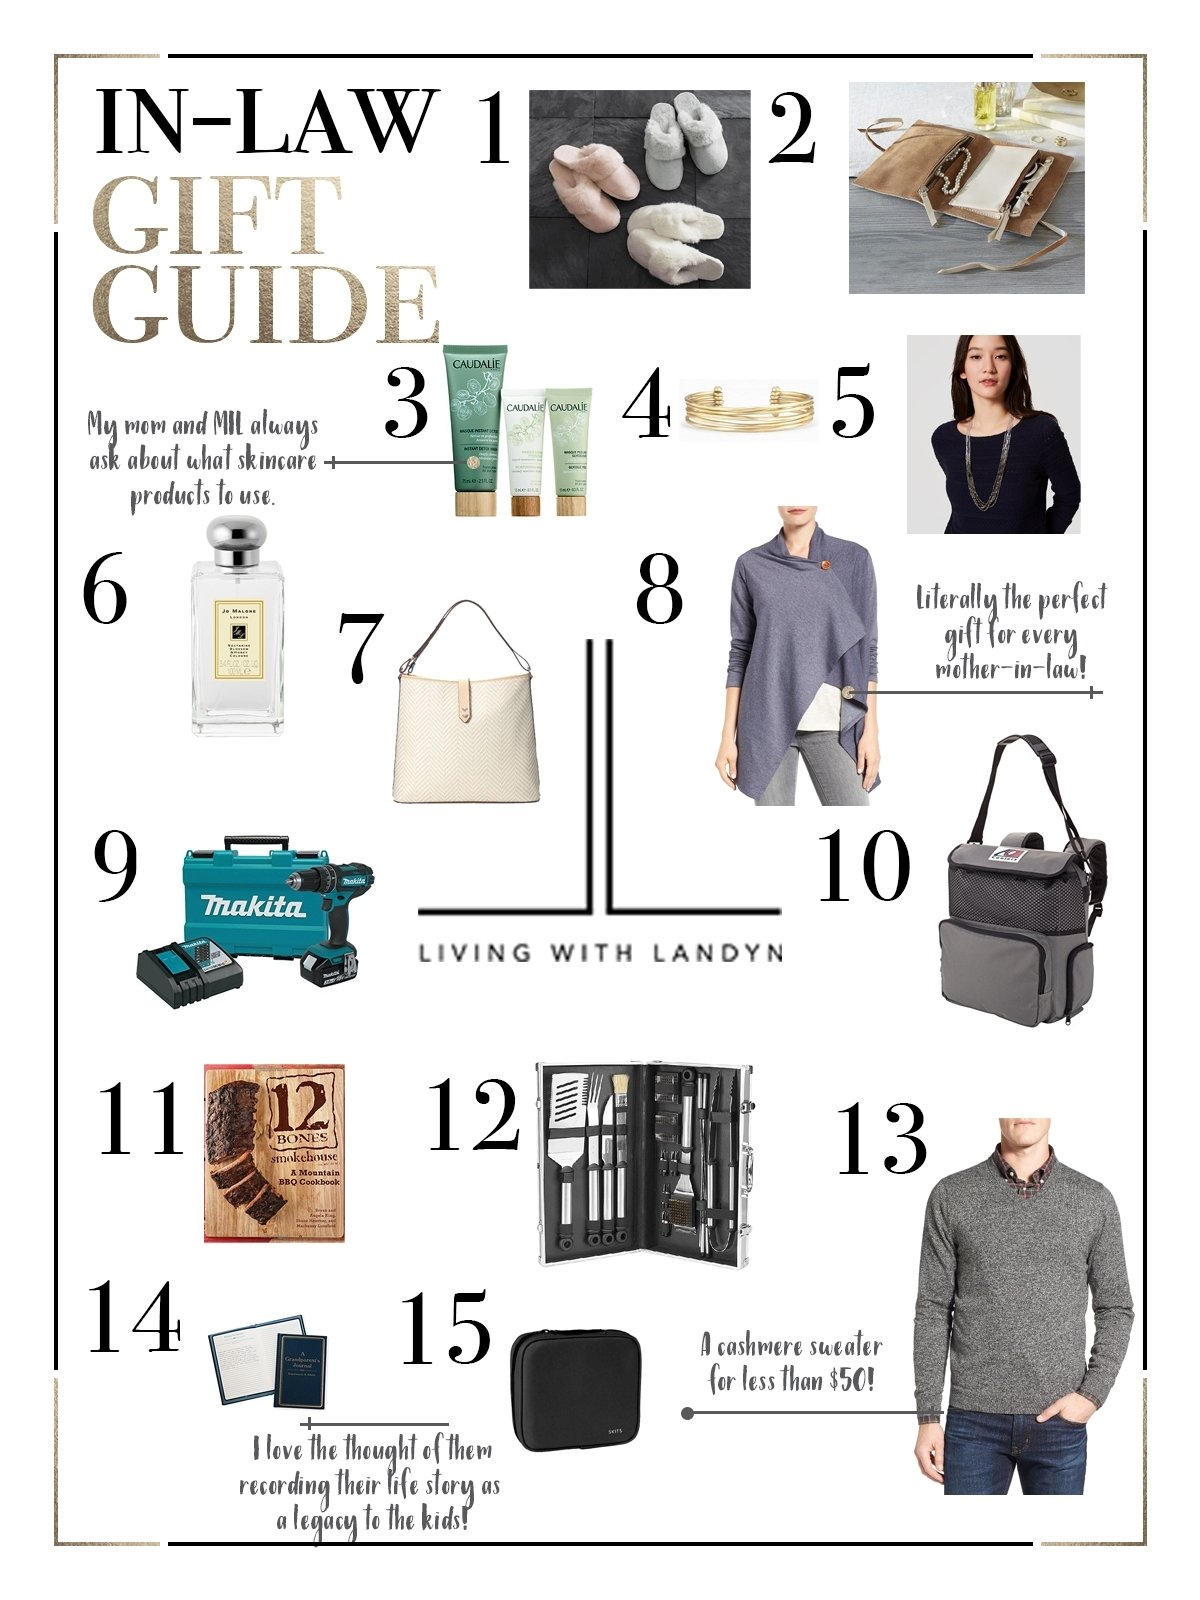 10 Stylish Father In Law Christmas Gift Ideas if you are struggling with what to get your in laws for christmas 2 2020